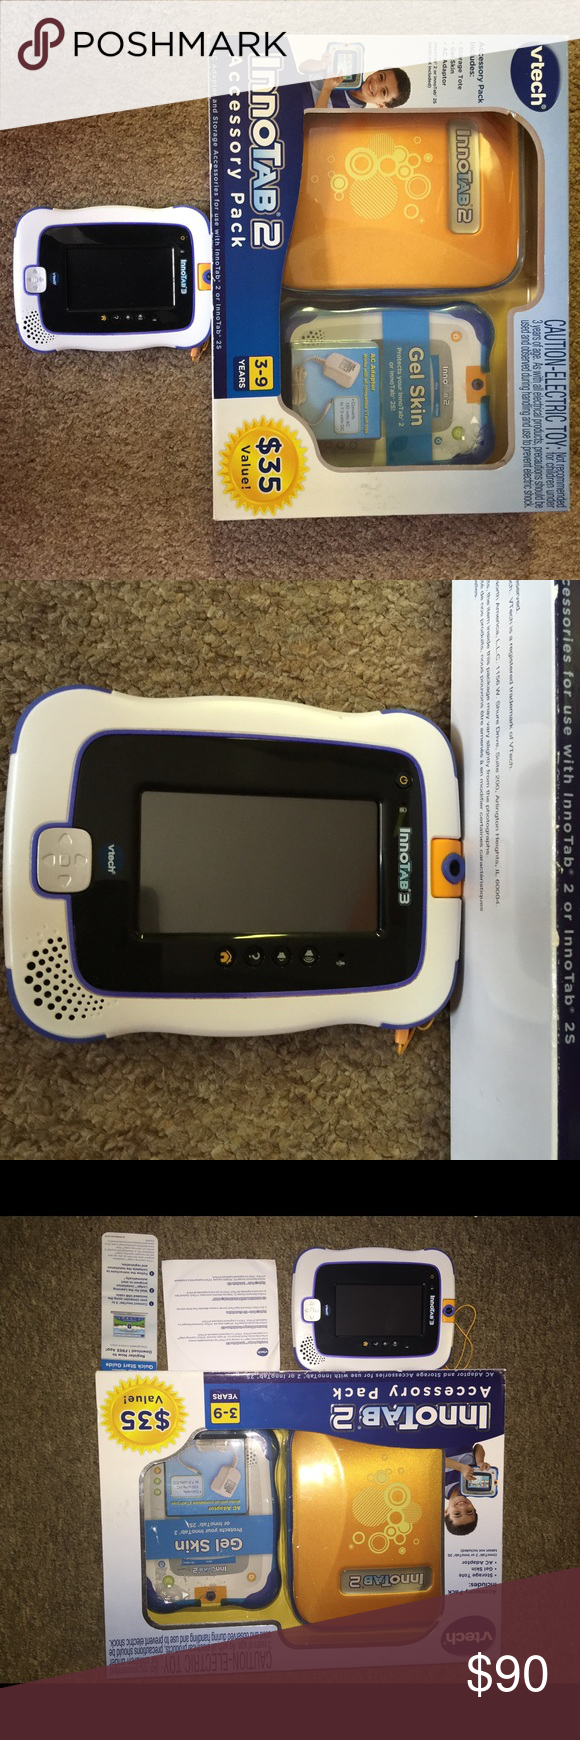 InnoTab 2 Vtec InnoTab 3 learning app tablet - New- Never Used (not in box/no box for Tablet)  Pop-up, Touchscreen keypad, microphone, photo/video camera, memory slot (card not included), rotating camera, hundreds of apps to download, comes with 1 cartridge. Bonus- case/charger/storage tote 35.00 value V tec Other